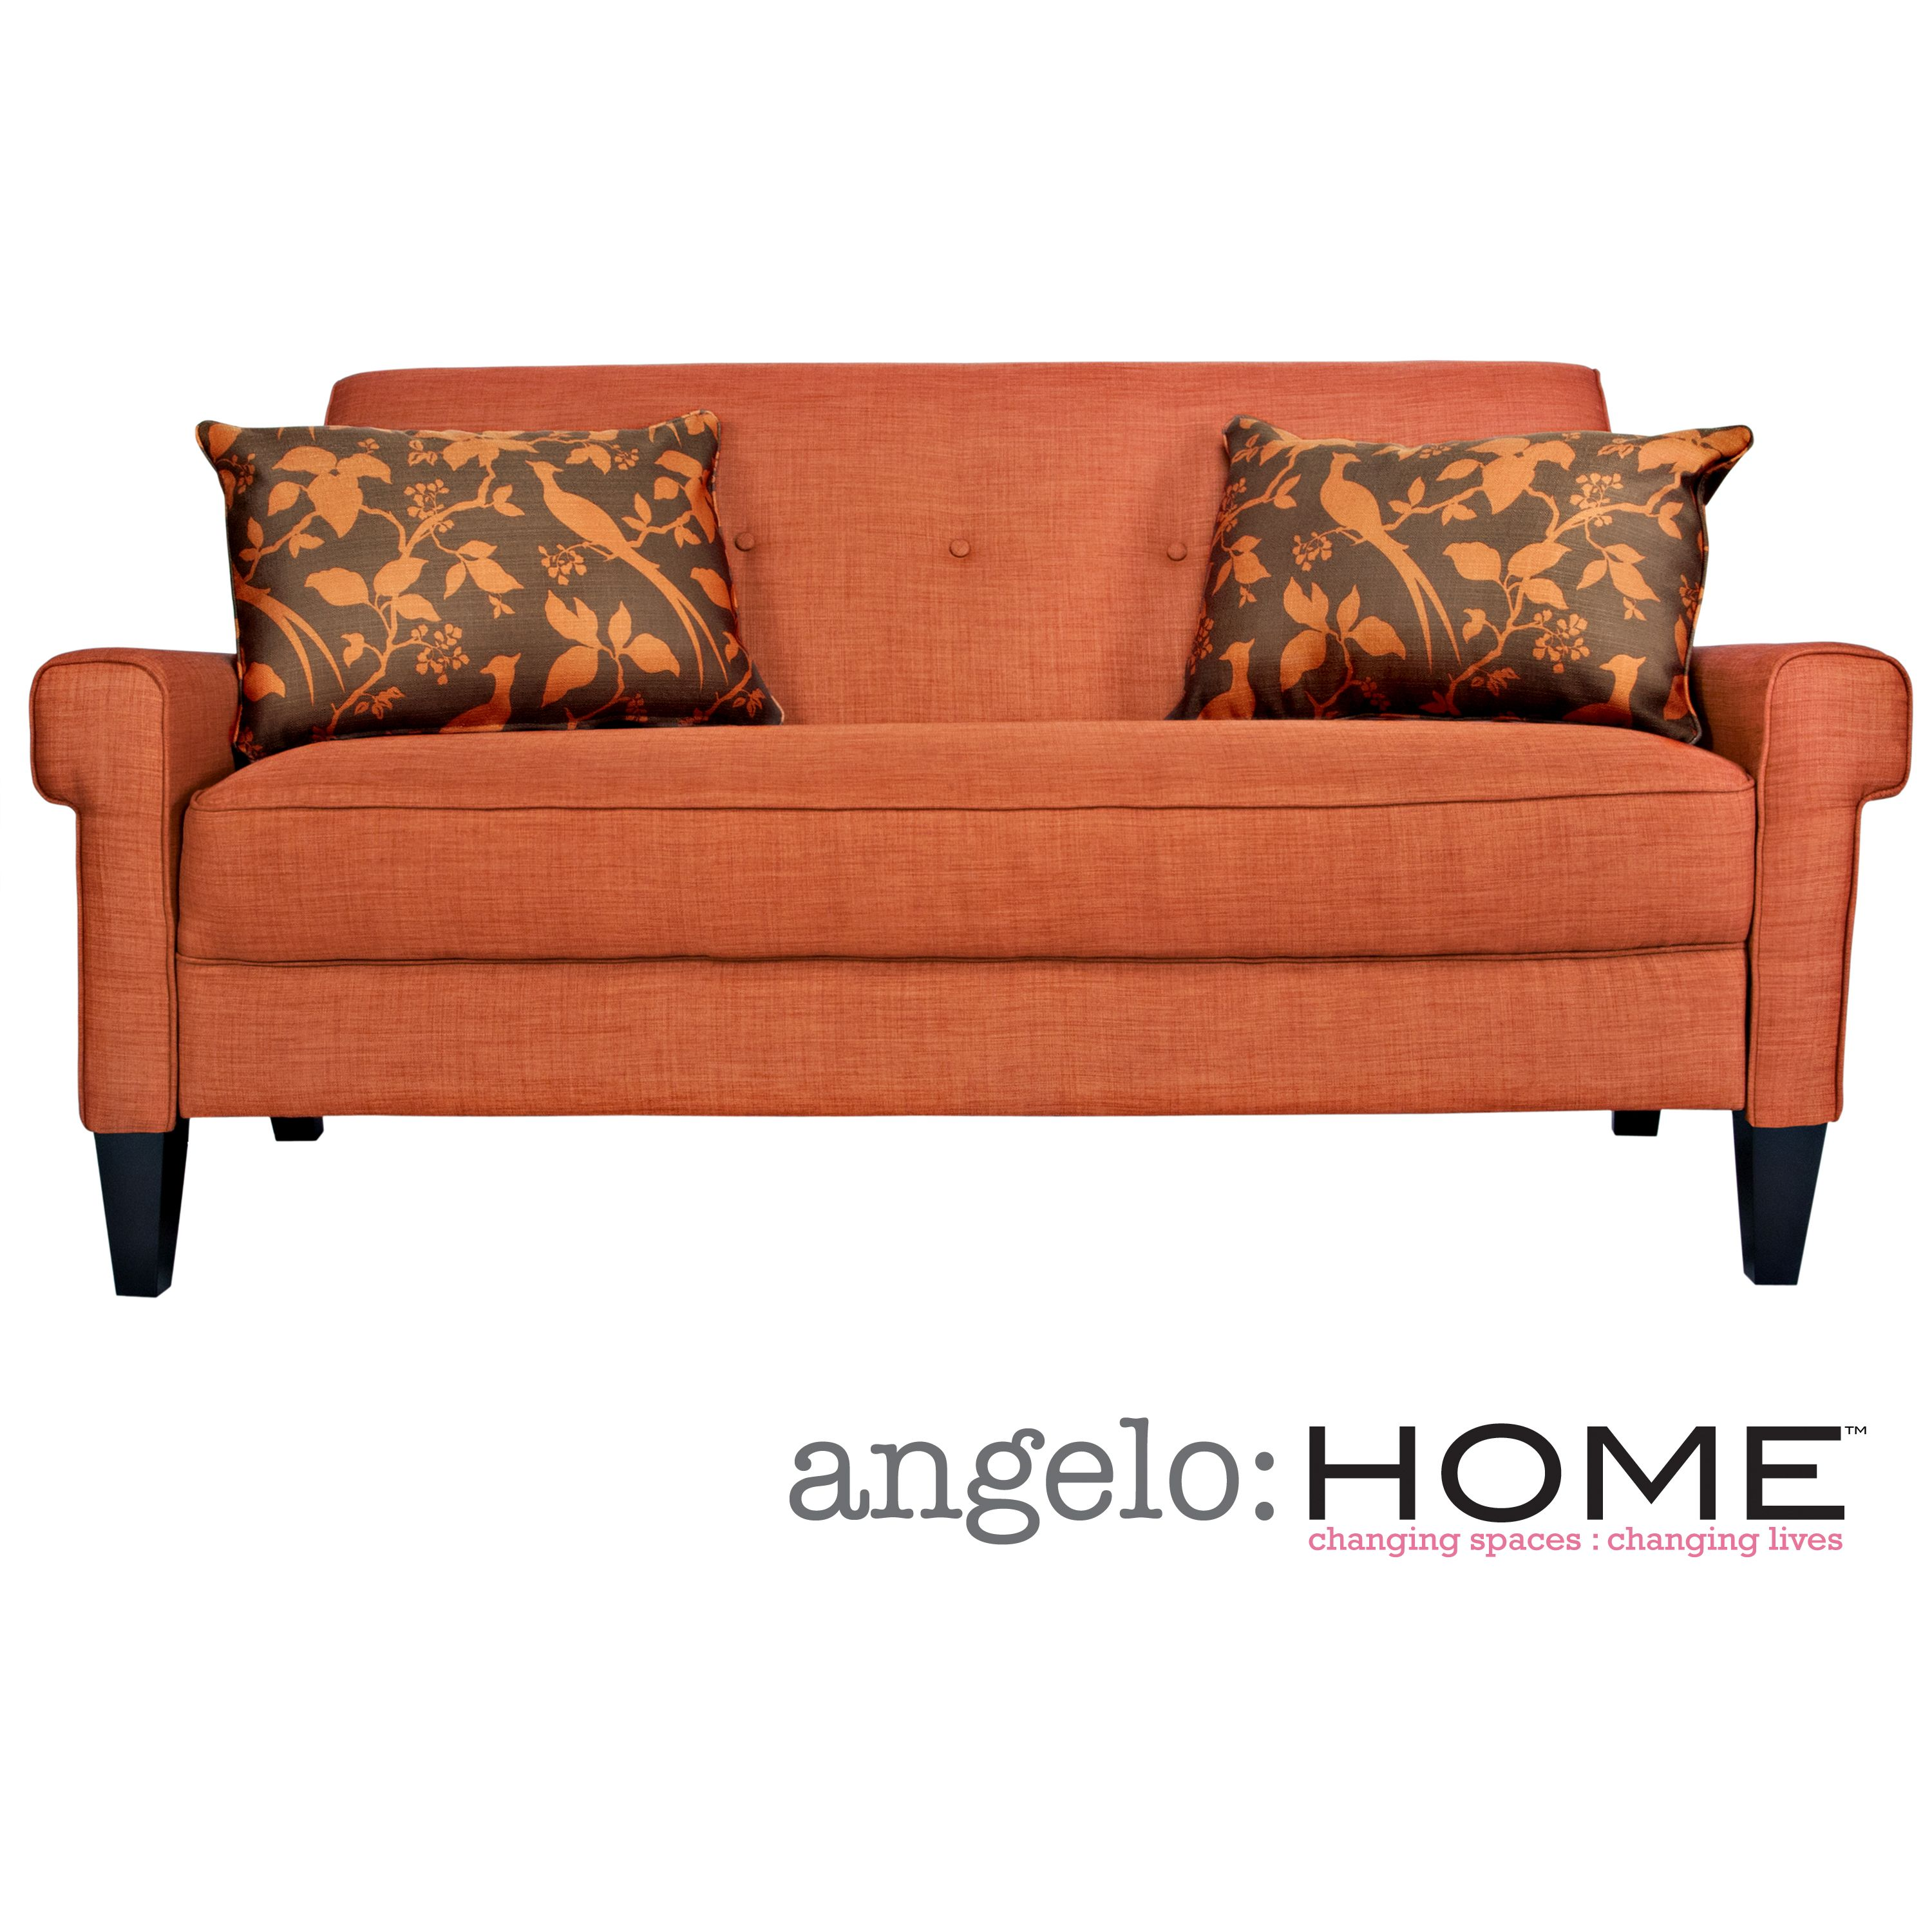 The Angelo Home Ennis Sofa Was Designed By Surmelis Has Squared Arms And Is Covered In A Vintage Orange Linen Like Twill Texture